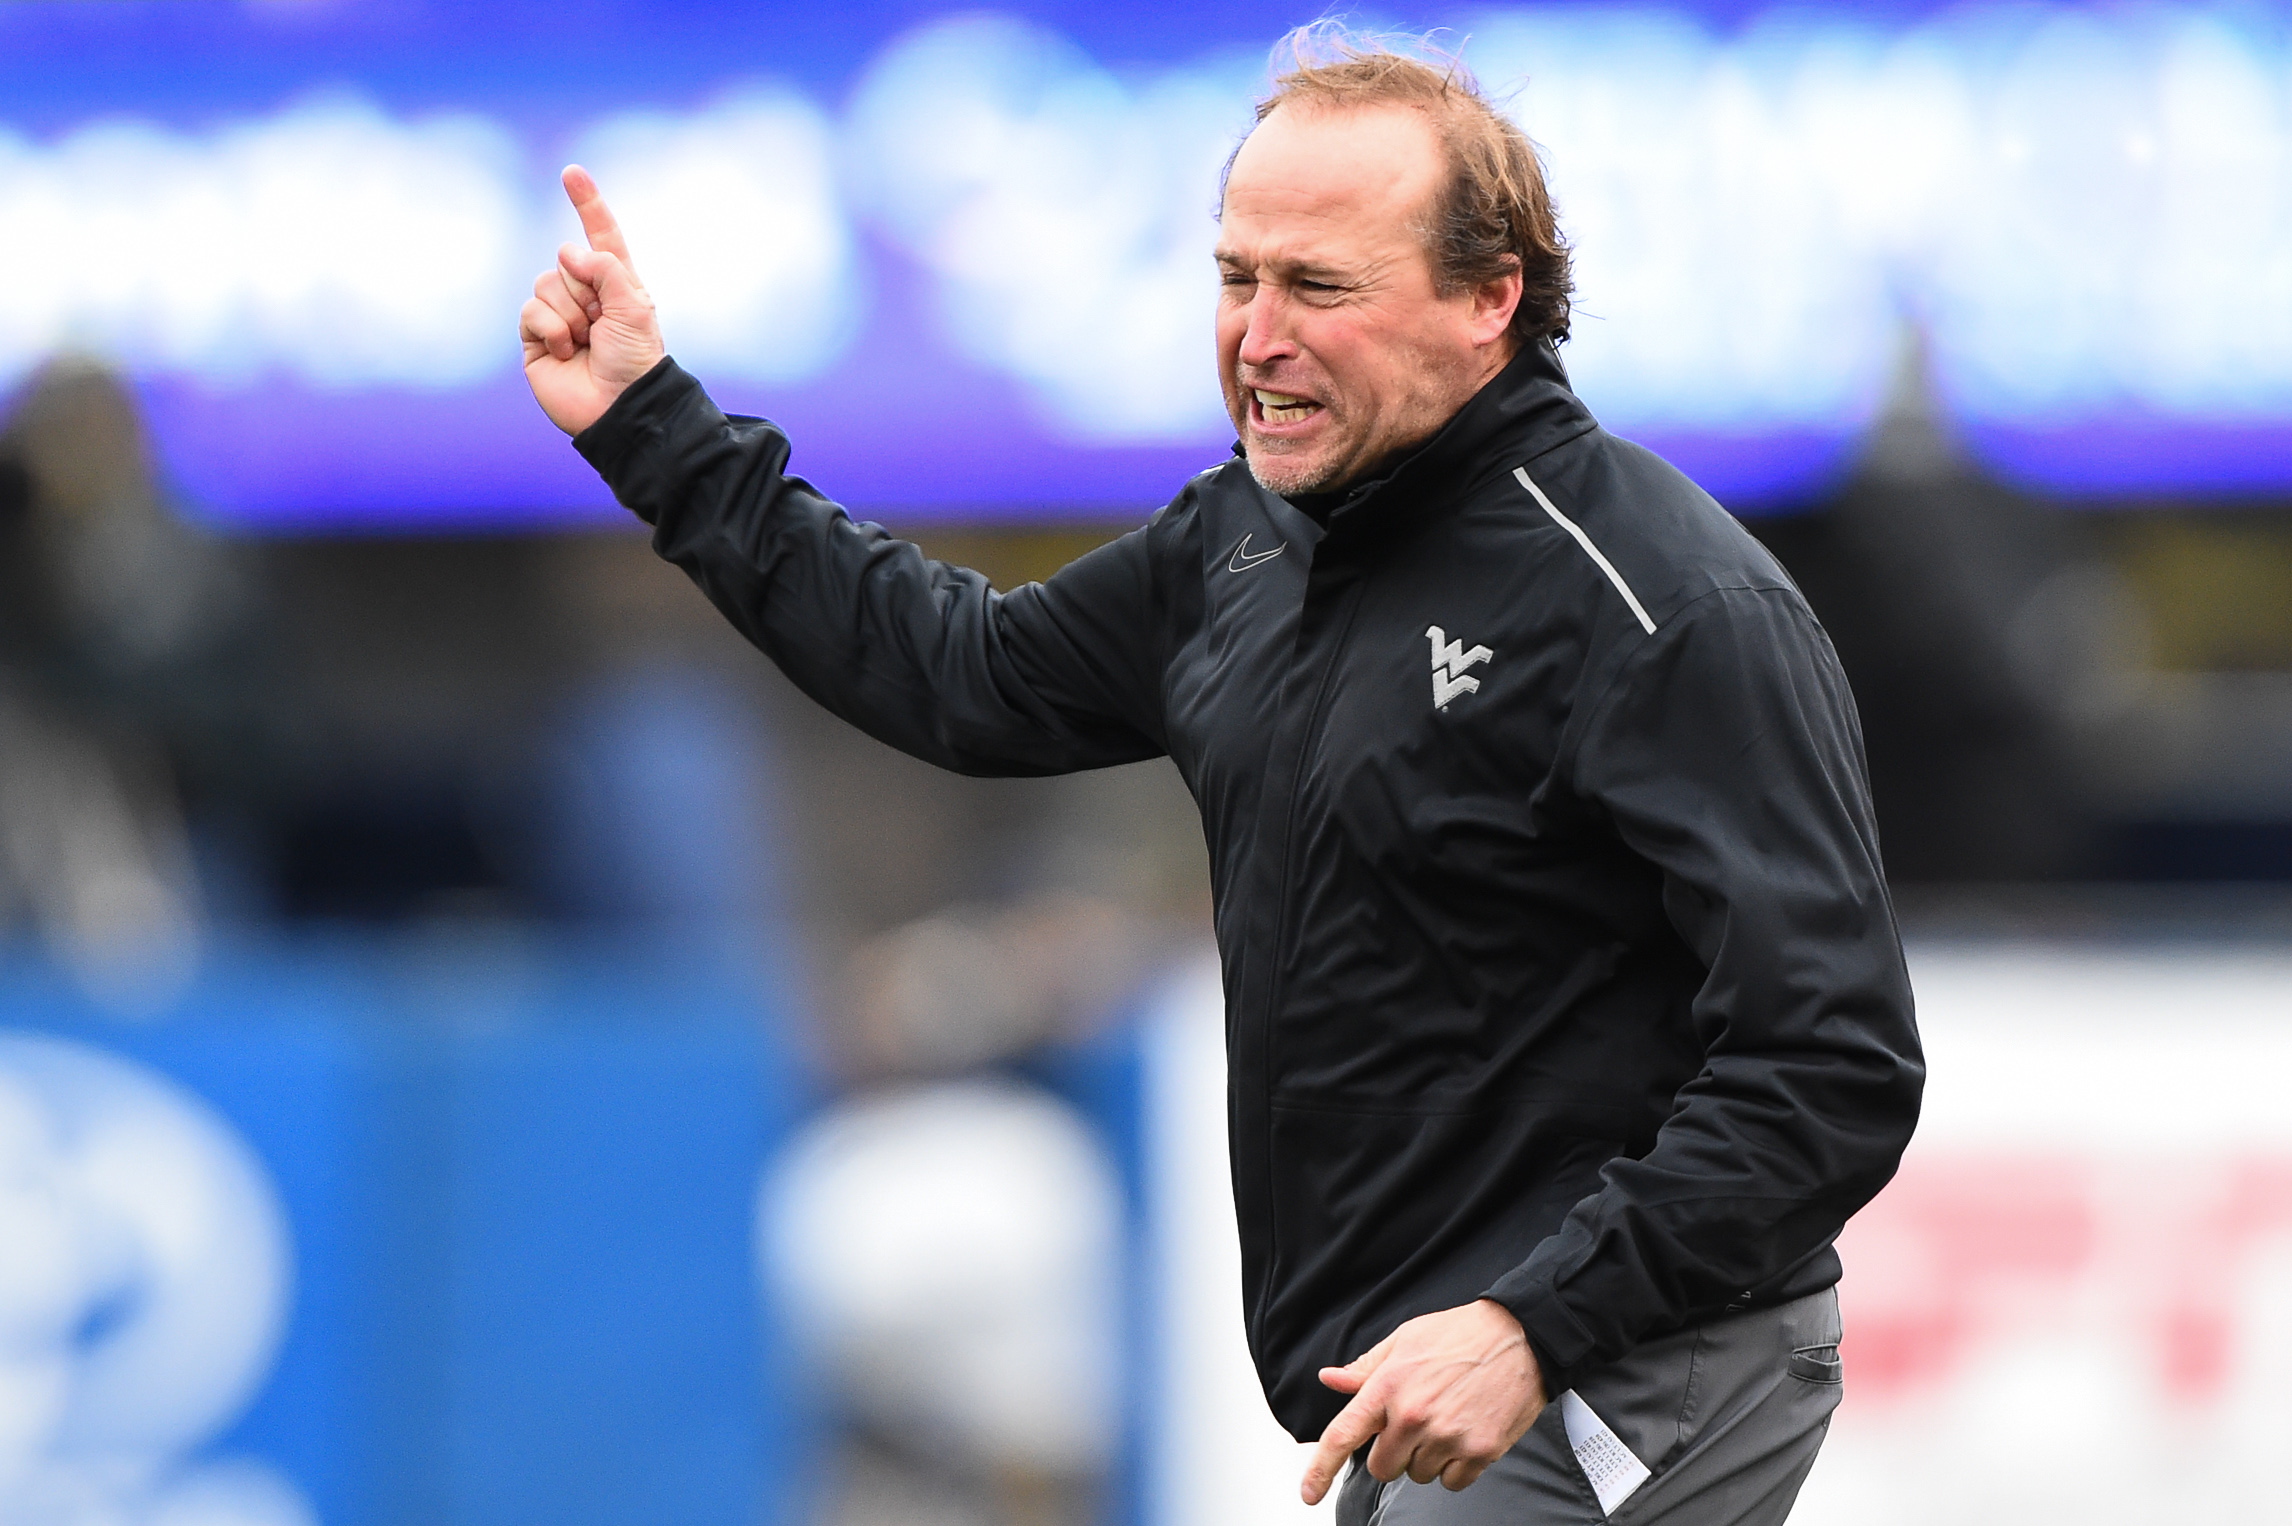 West Virginia head coach Dana Holgorsen reacts to the end of happy hour at a Morgantown Applebee's.